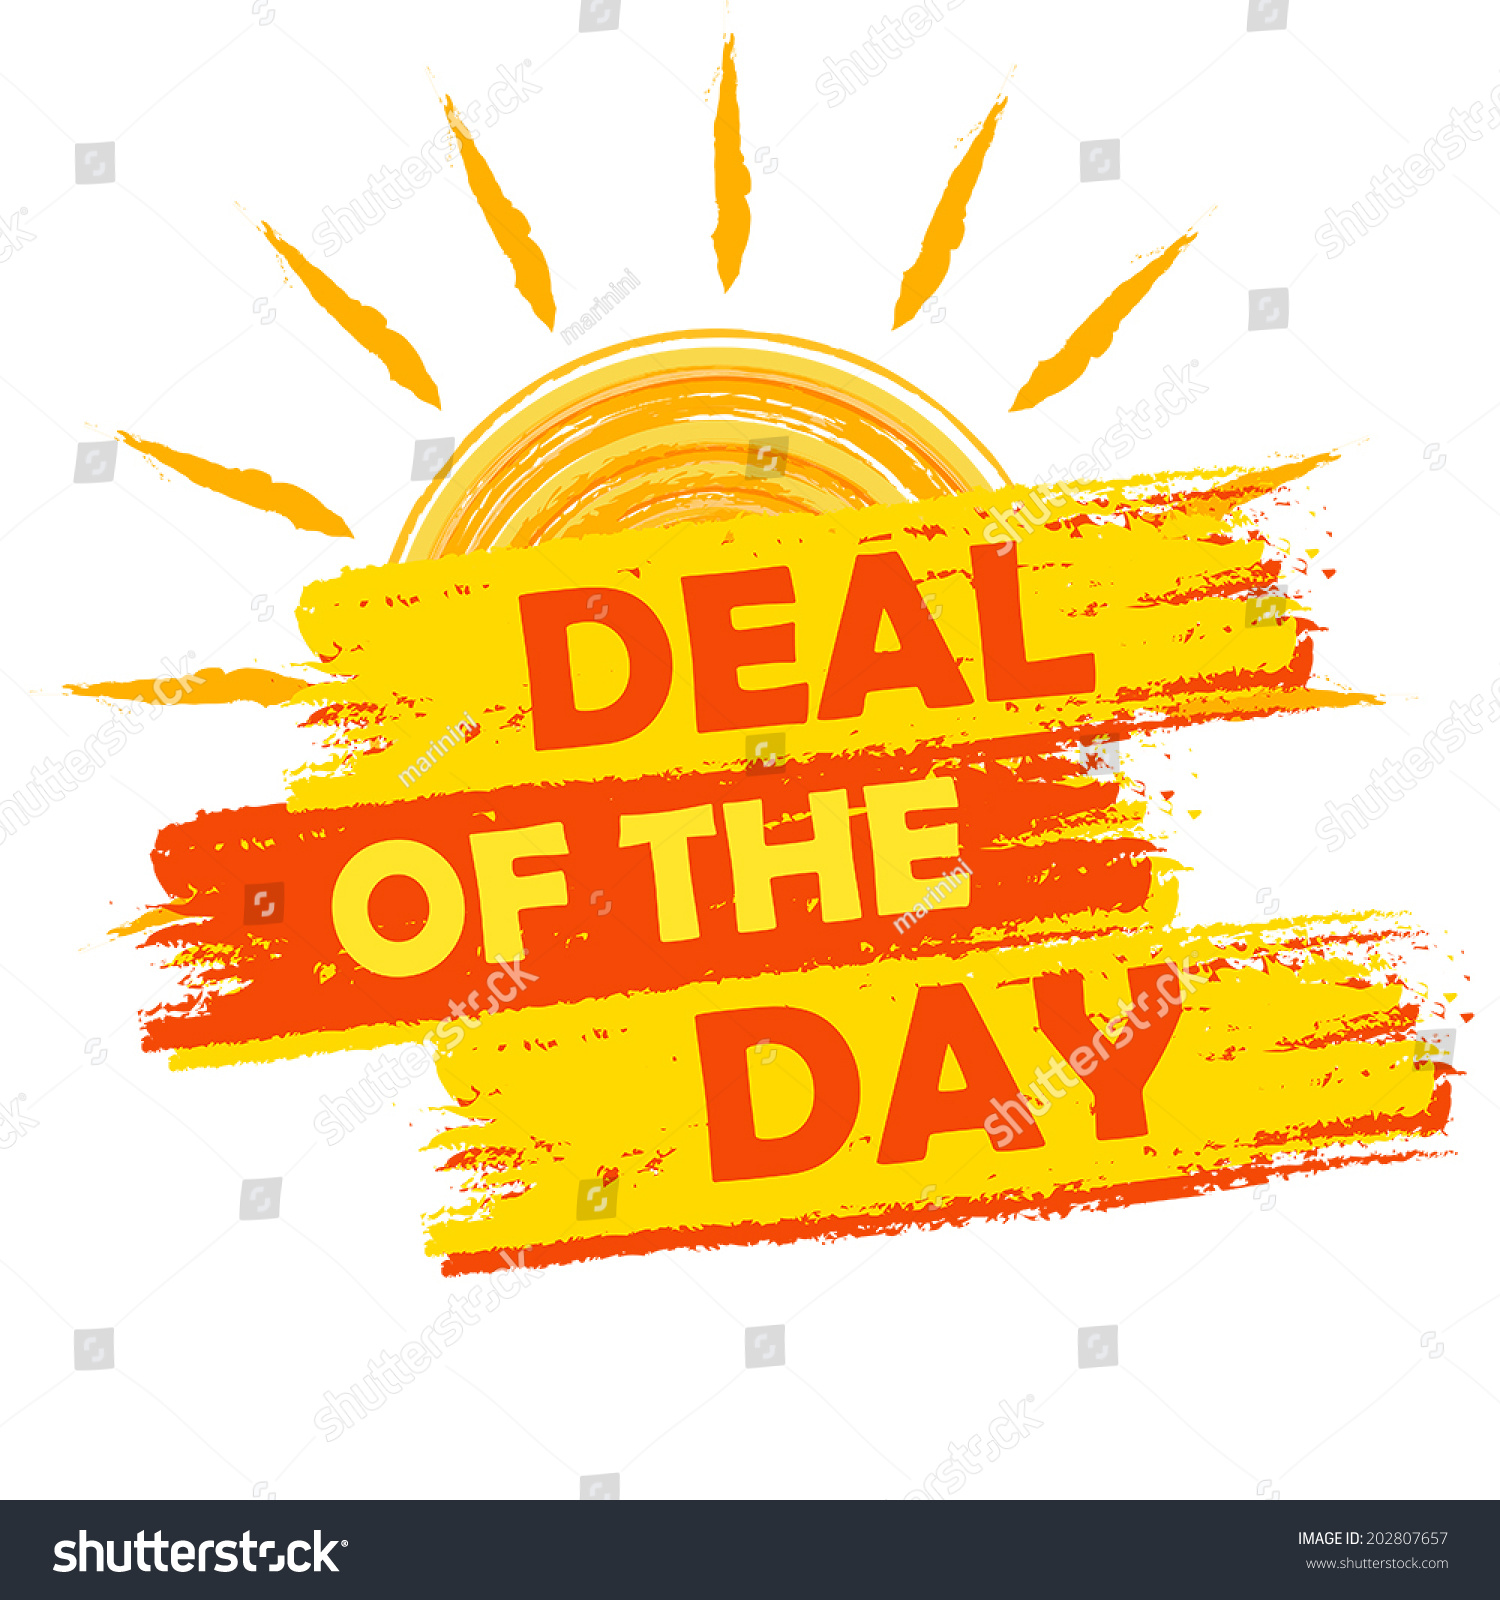 Watch deals of the day usa